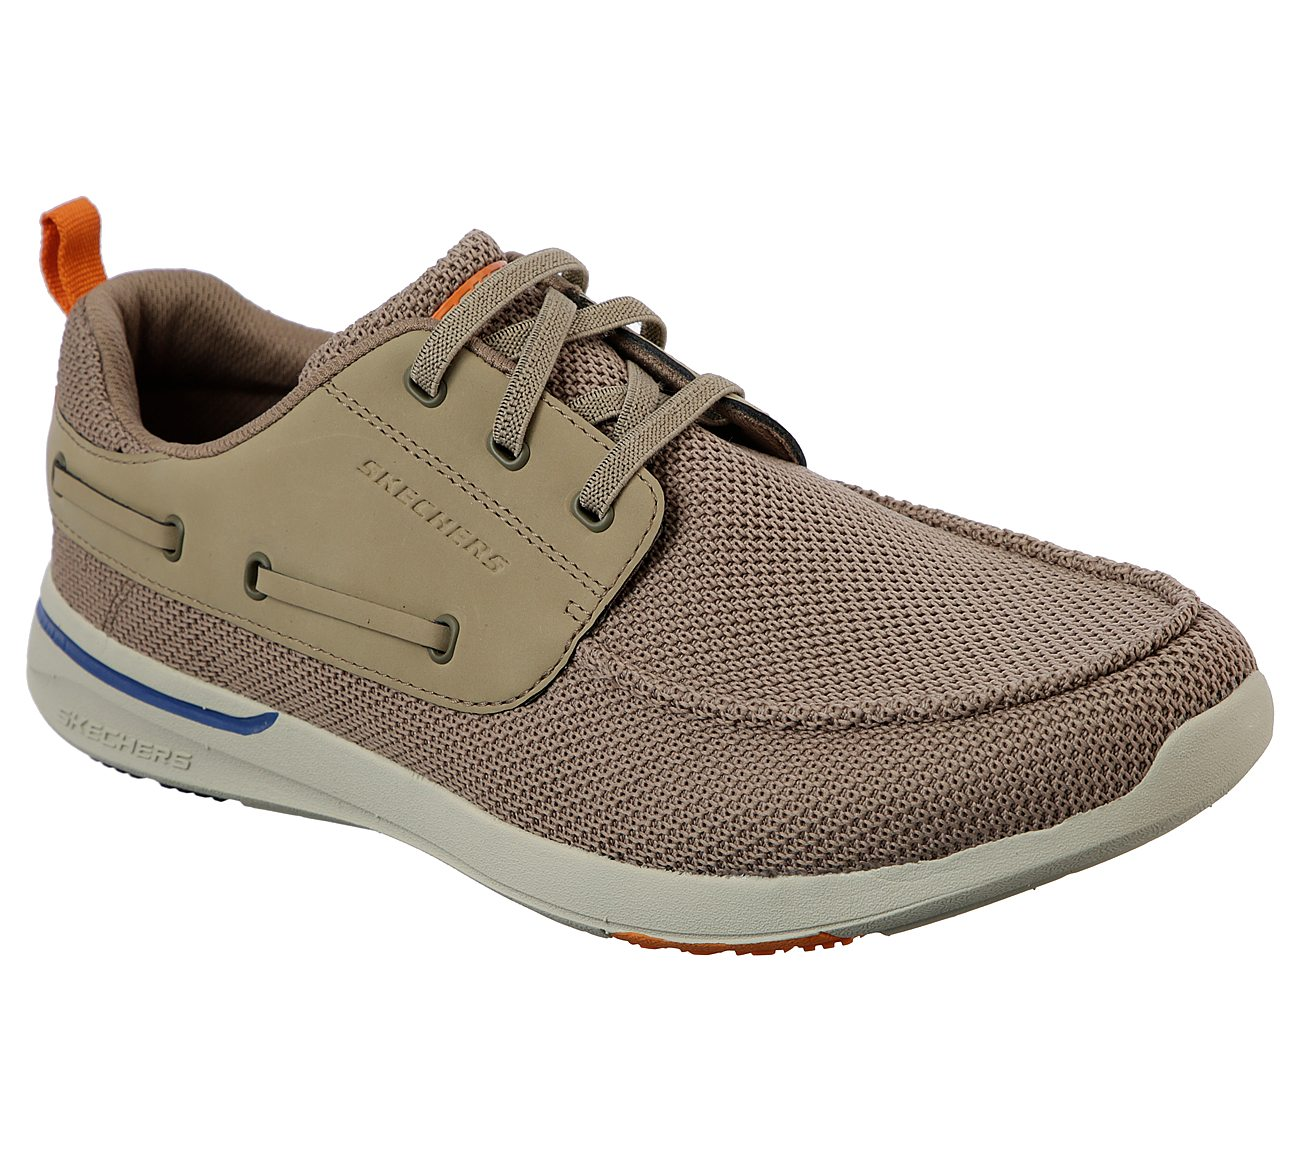 SKECHERS Relaxed Fit®: Elent - Berick 82lHrGeIY7